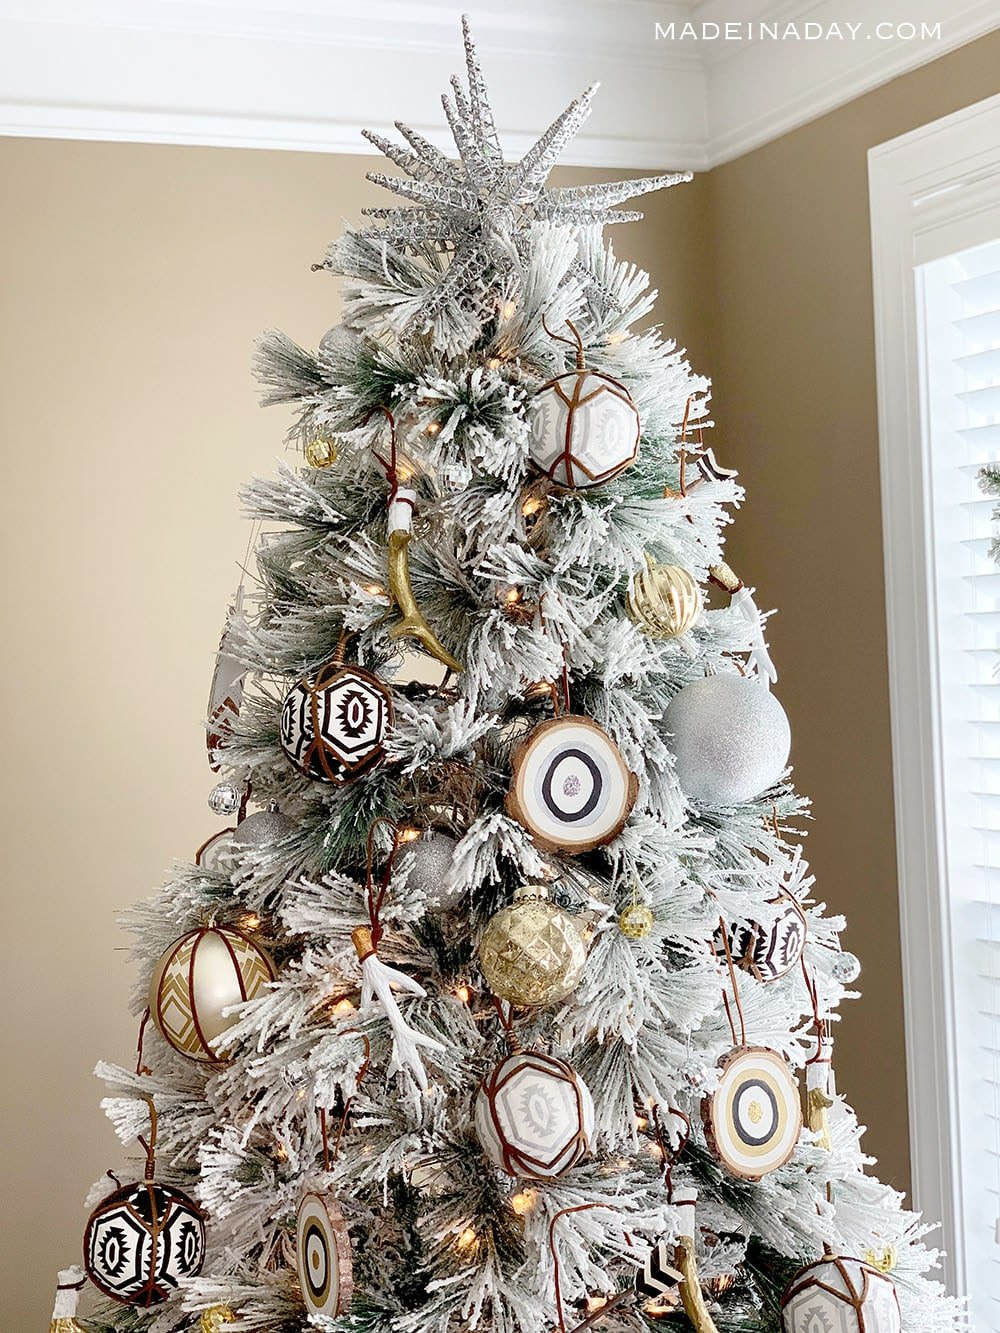 Flocked Boho Christmas Tree, DIY Handmade Boho Tree Ornaments, White, Gold Blush Christmas Tree